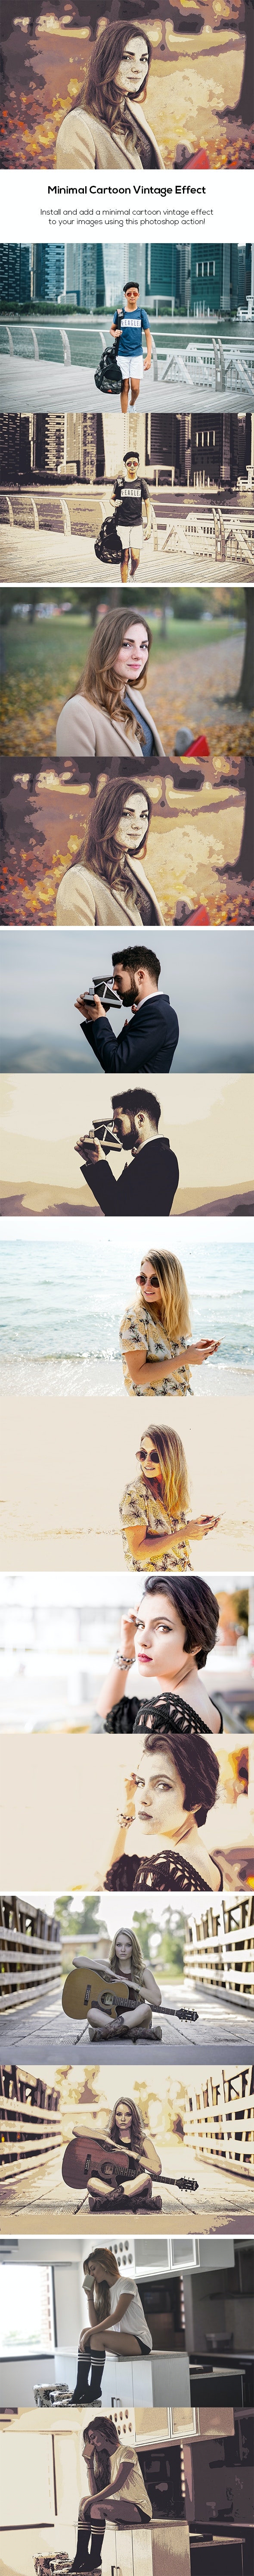 Minimal Cartoon Vintage Effect - Photo Effects Actions